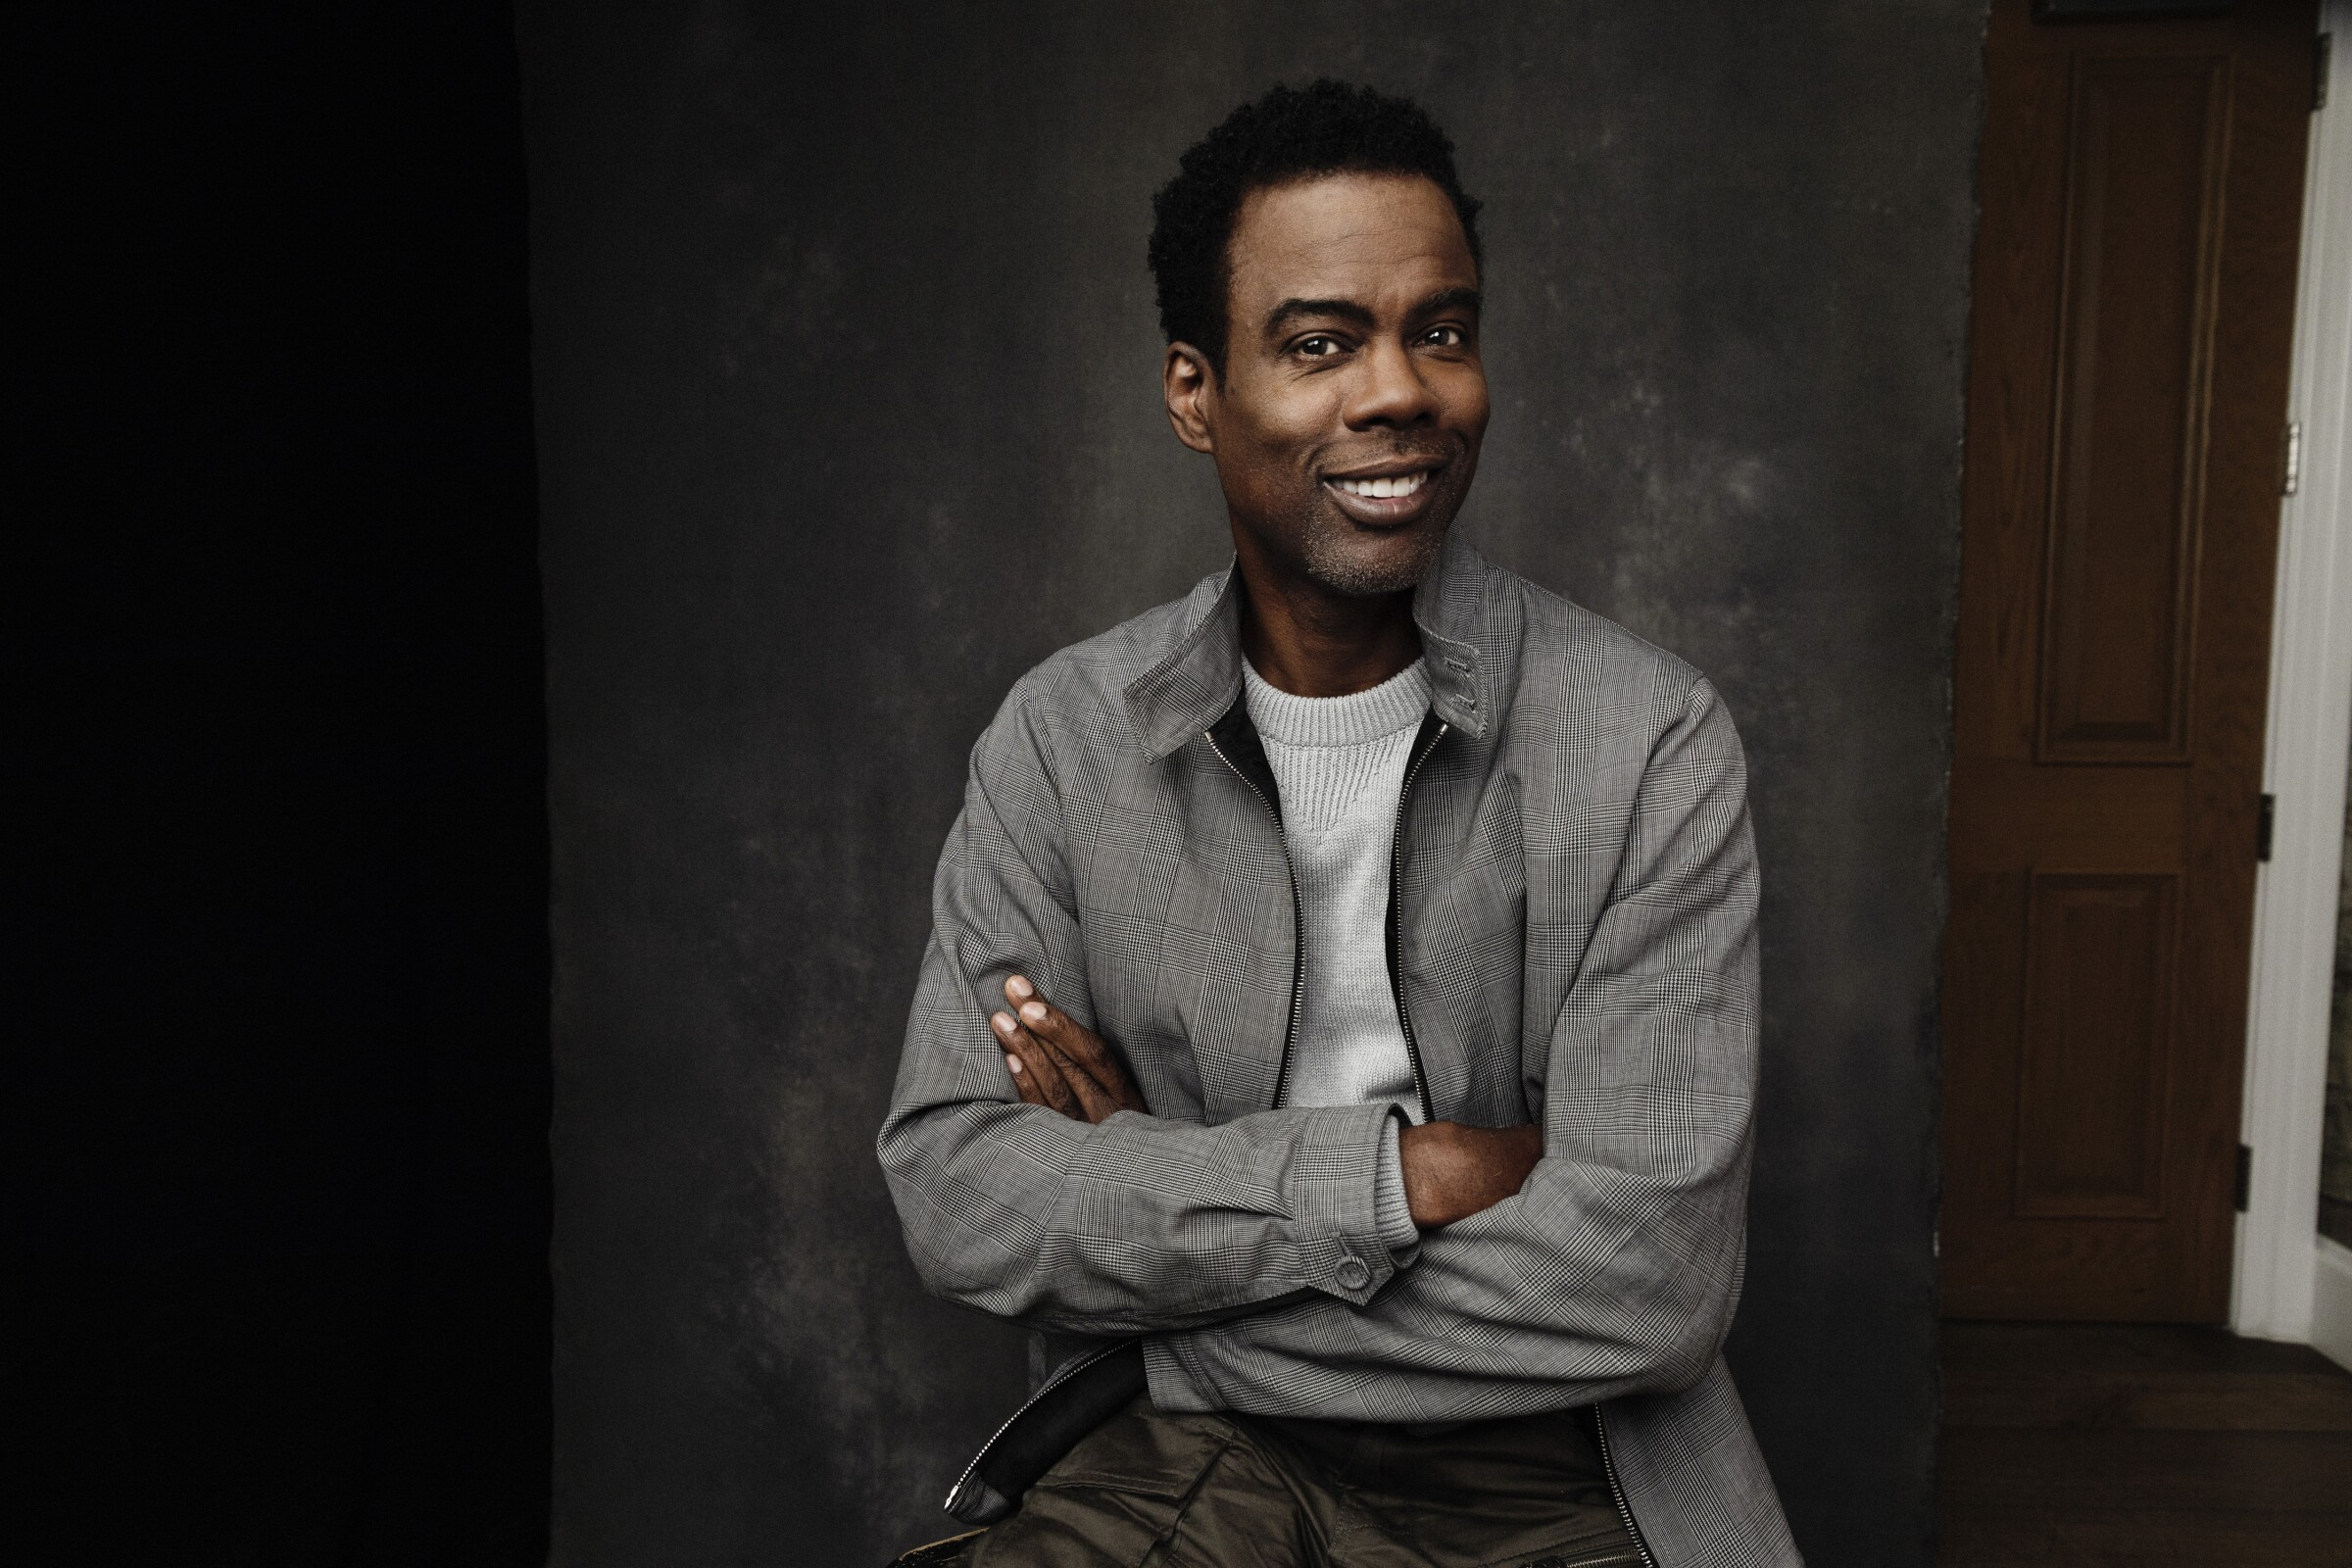 A portrait of Chris Rock, smiling and wearing a jacket with his arms crossed.